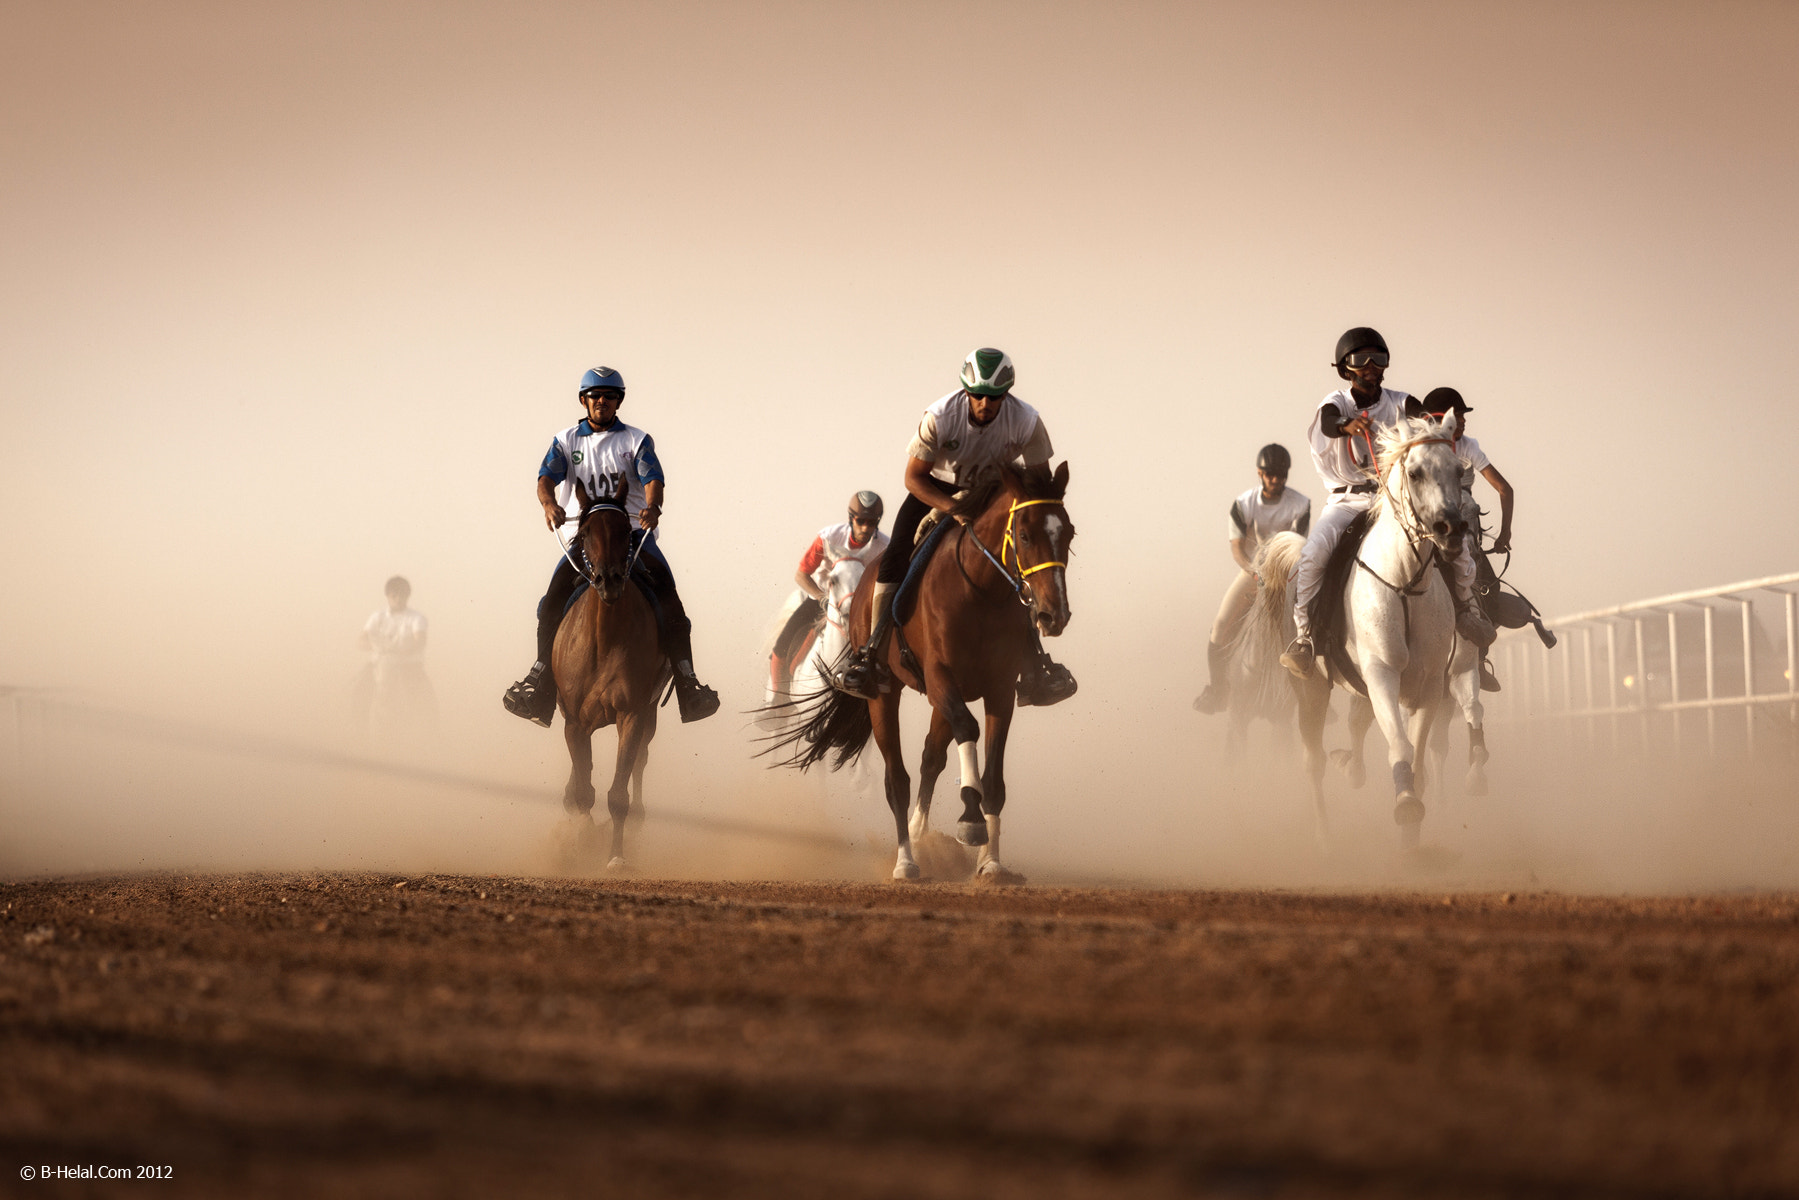 Photograph Horse Marathon by Naja Helal on 500px